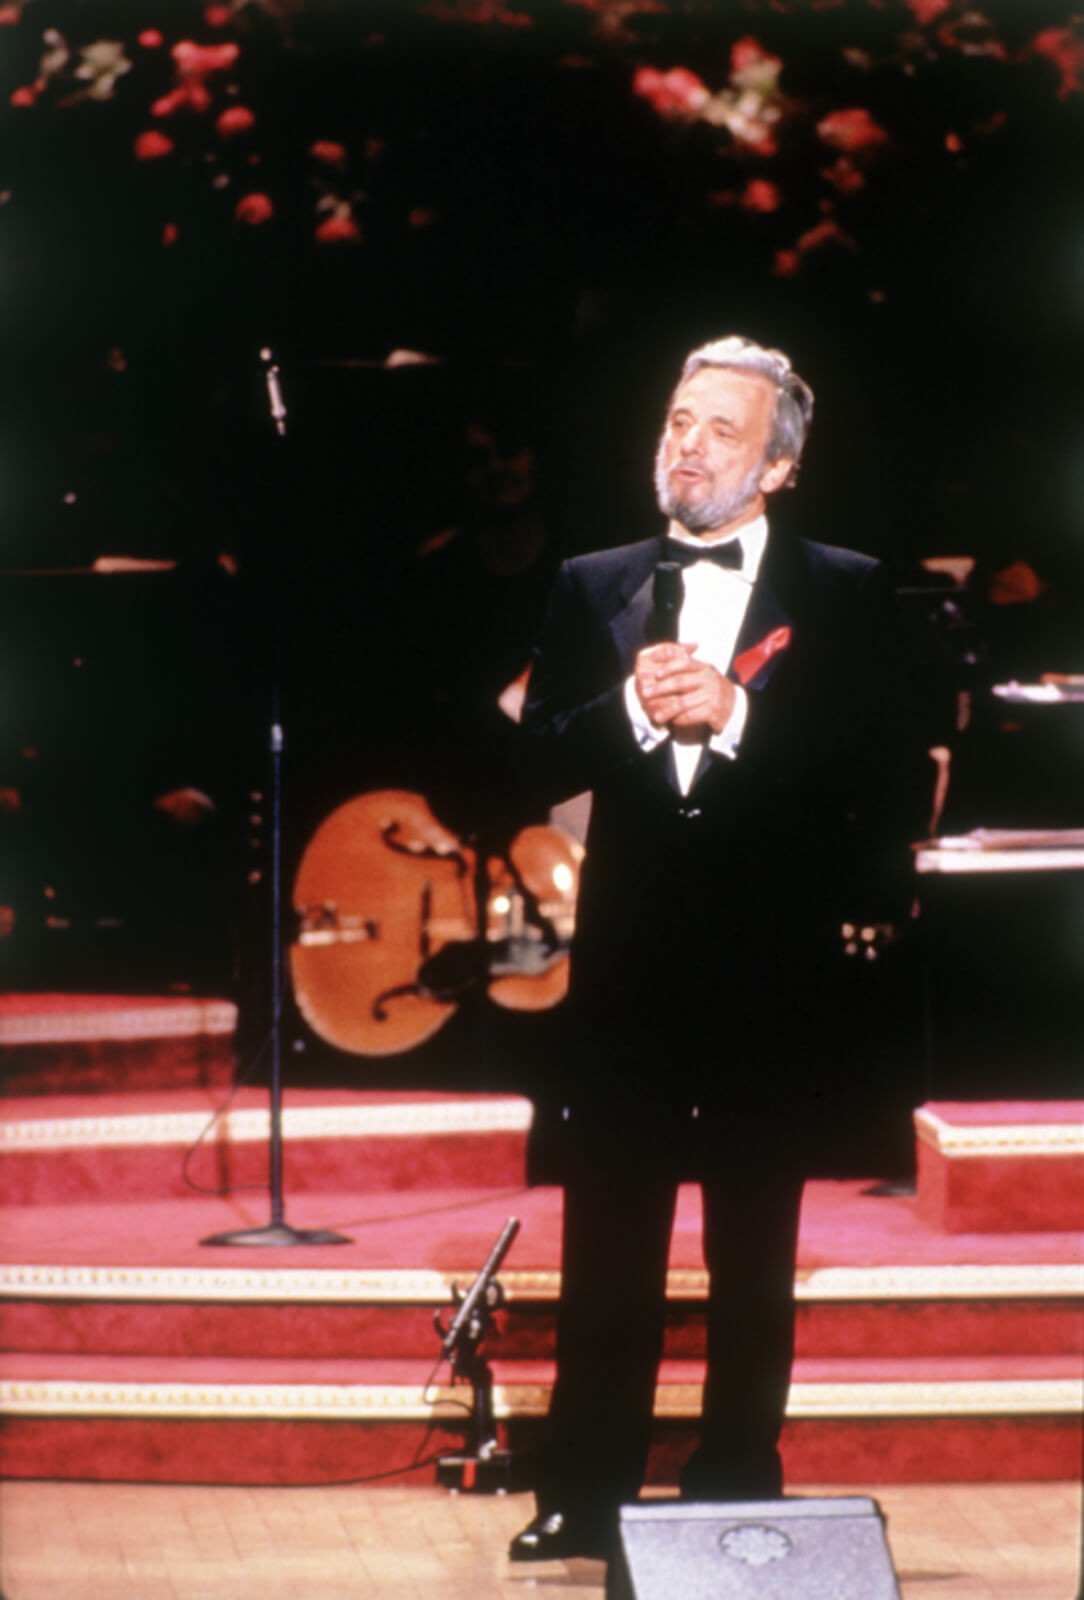 Stephen in a black tuxedo speaks to the audience.